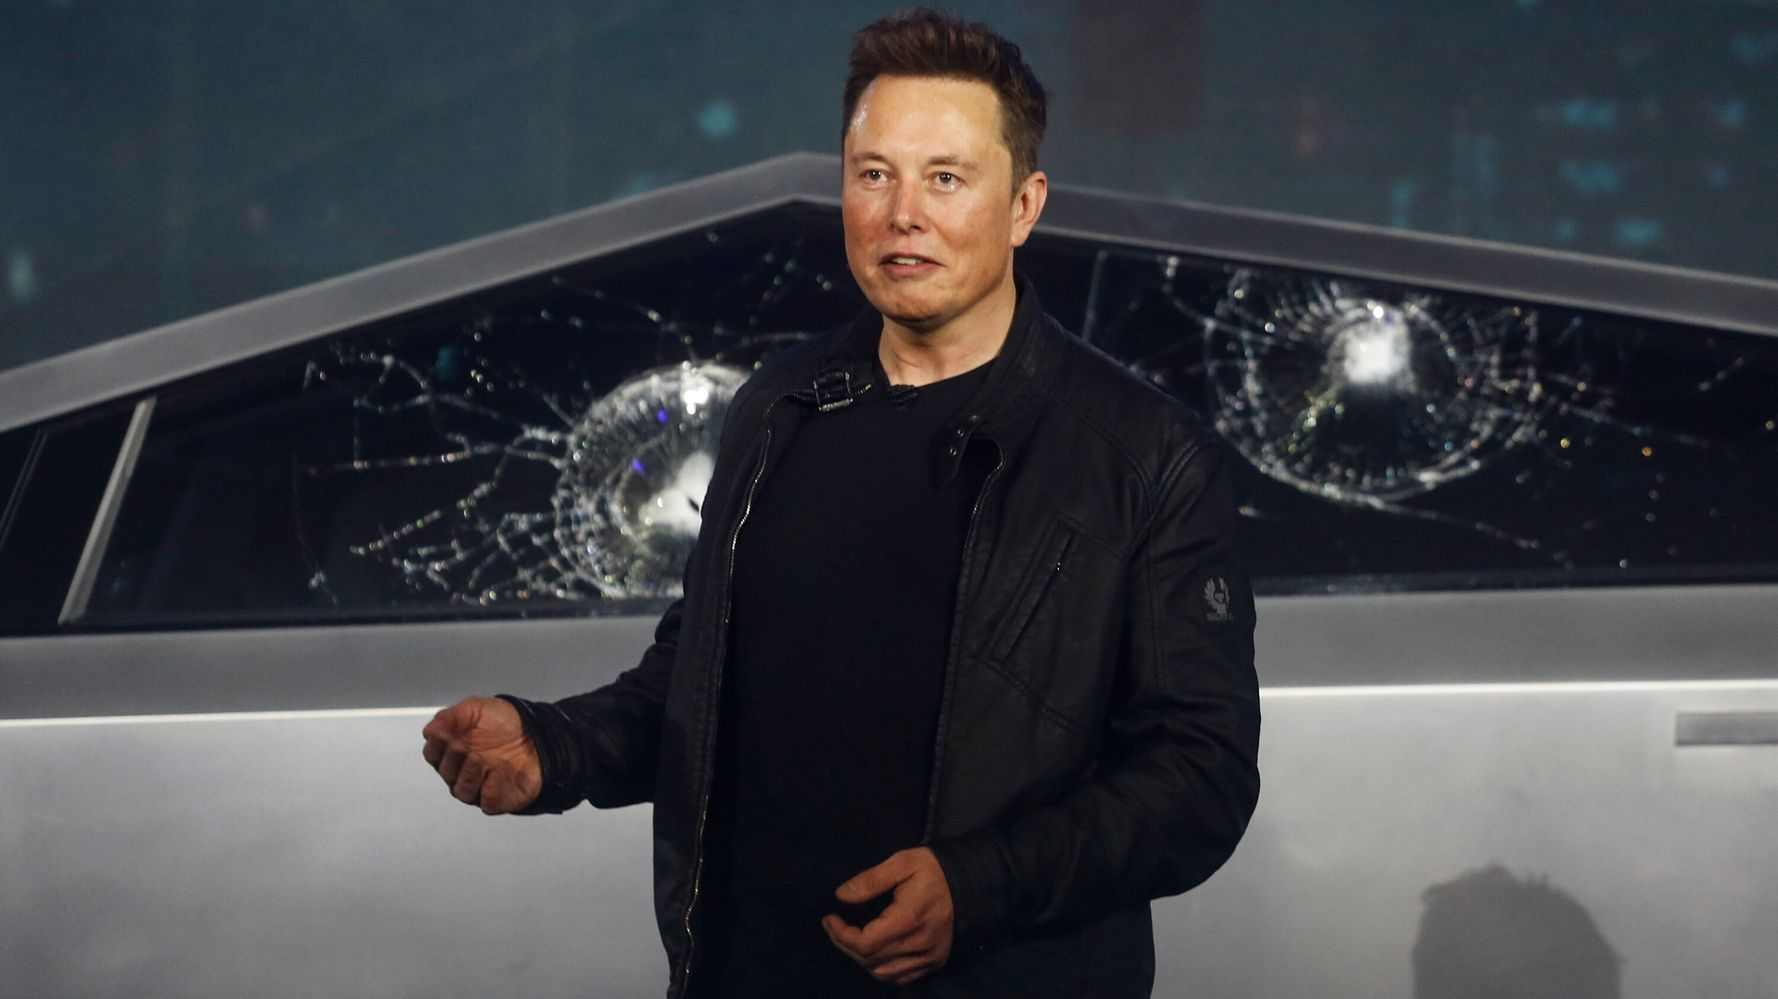 'Oh My F**king God': Elon Musk Stunned As Windows Crack On His 'Bulletproof' Cybertruck